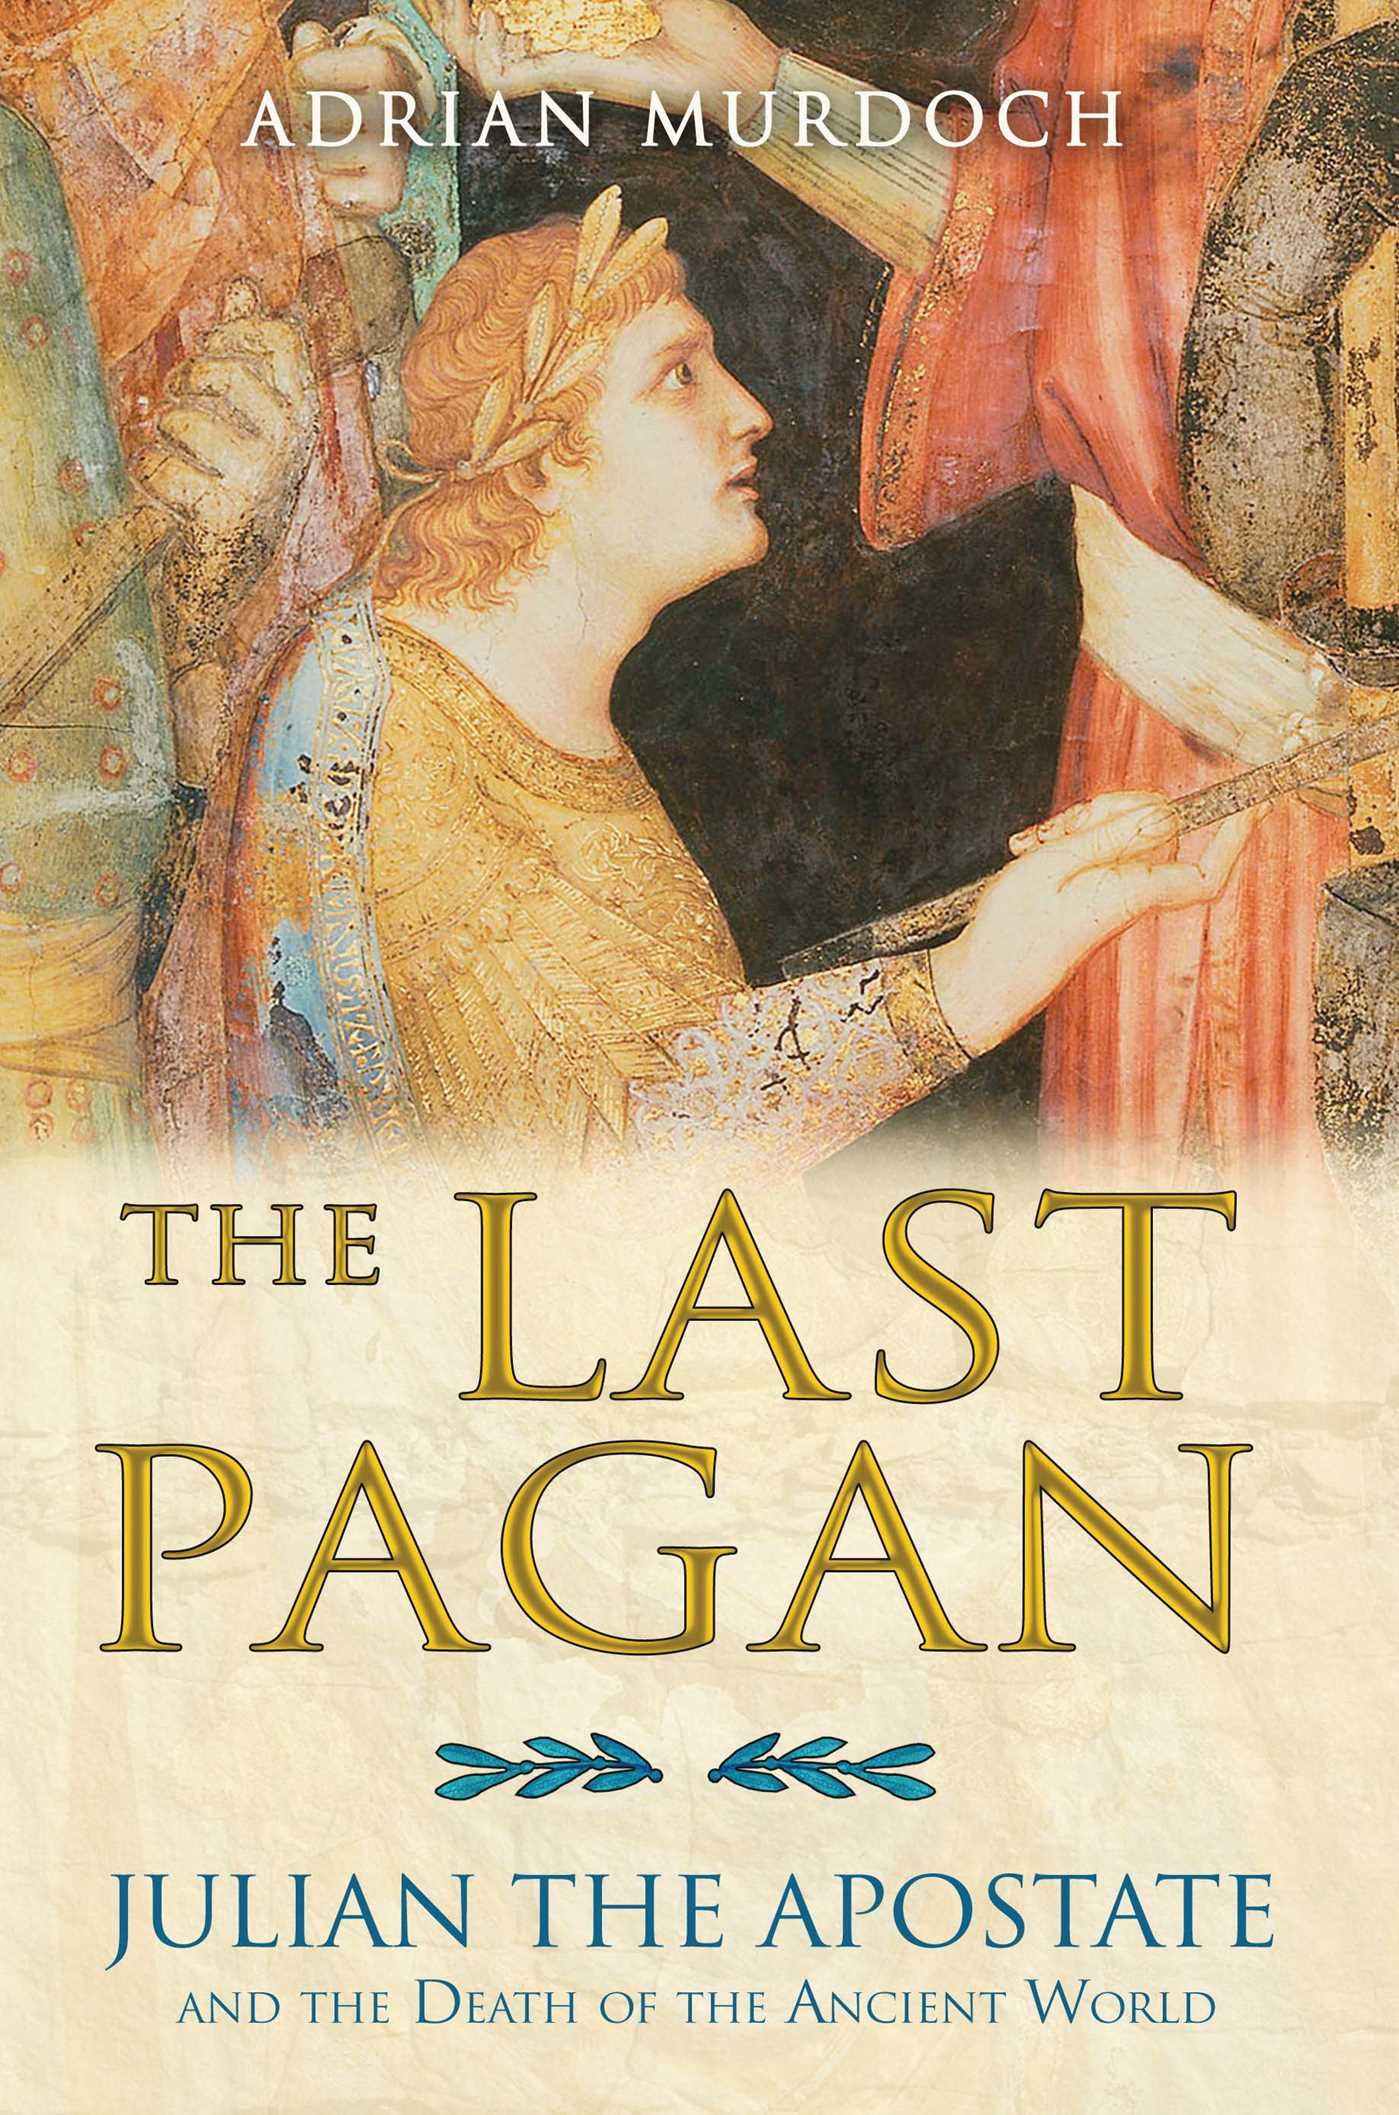 The Last Pagan | Book by Adrian Murdoch | Official Publisher Page